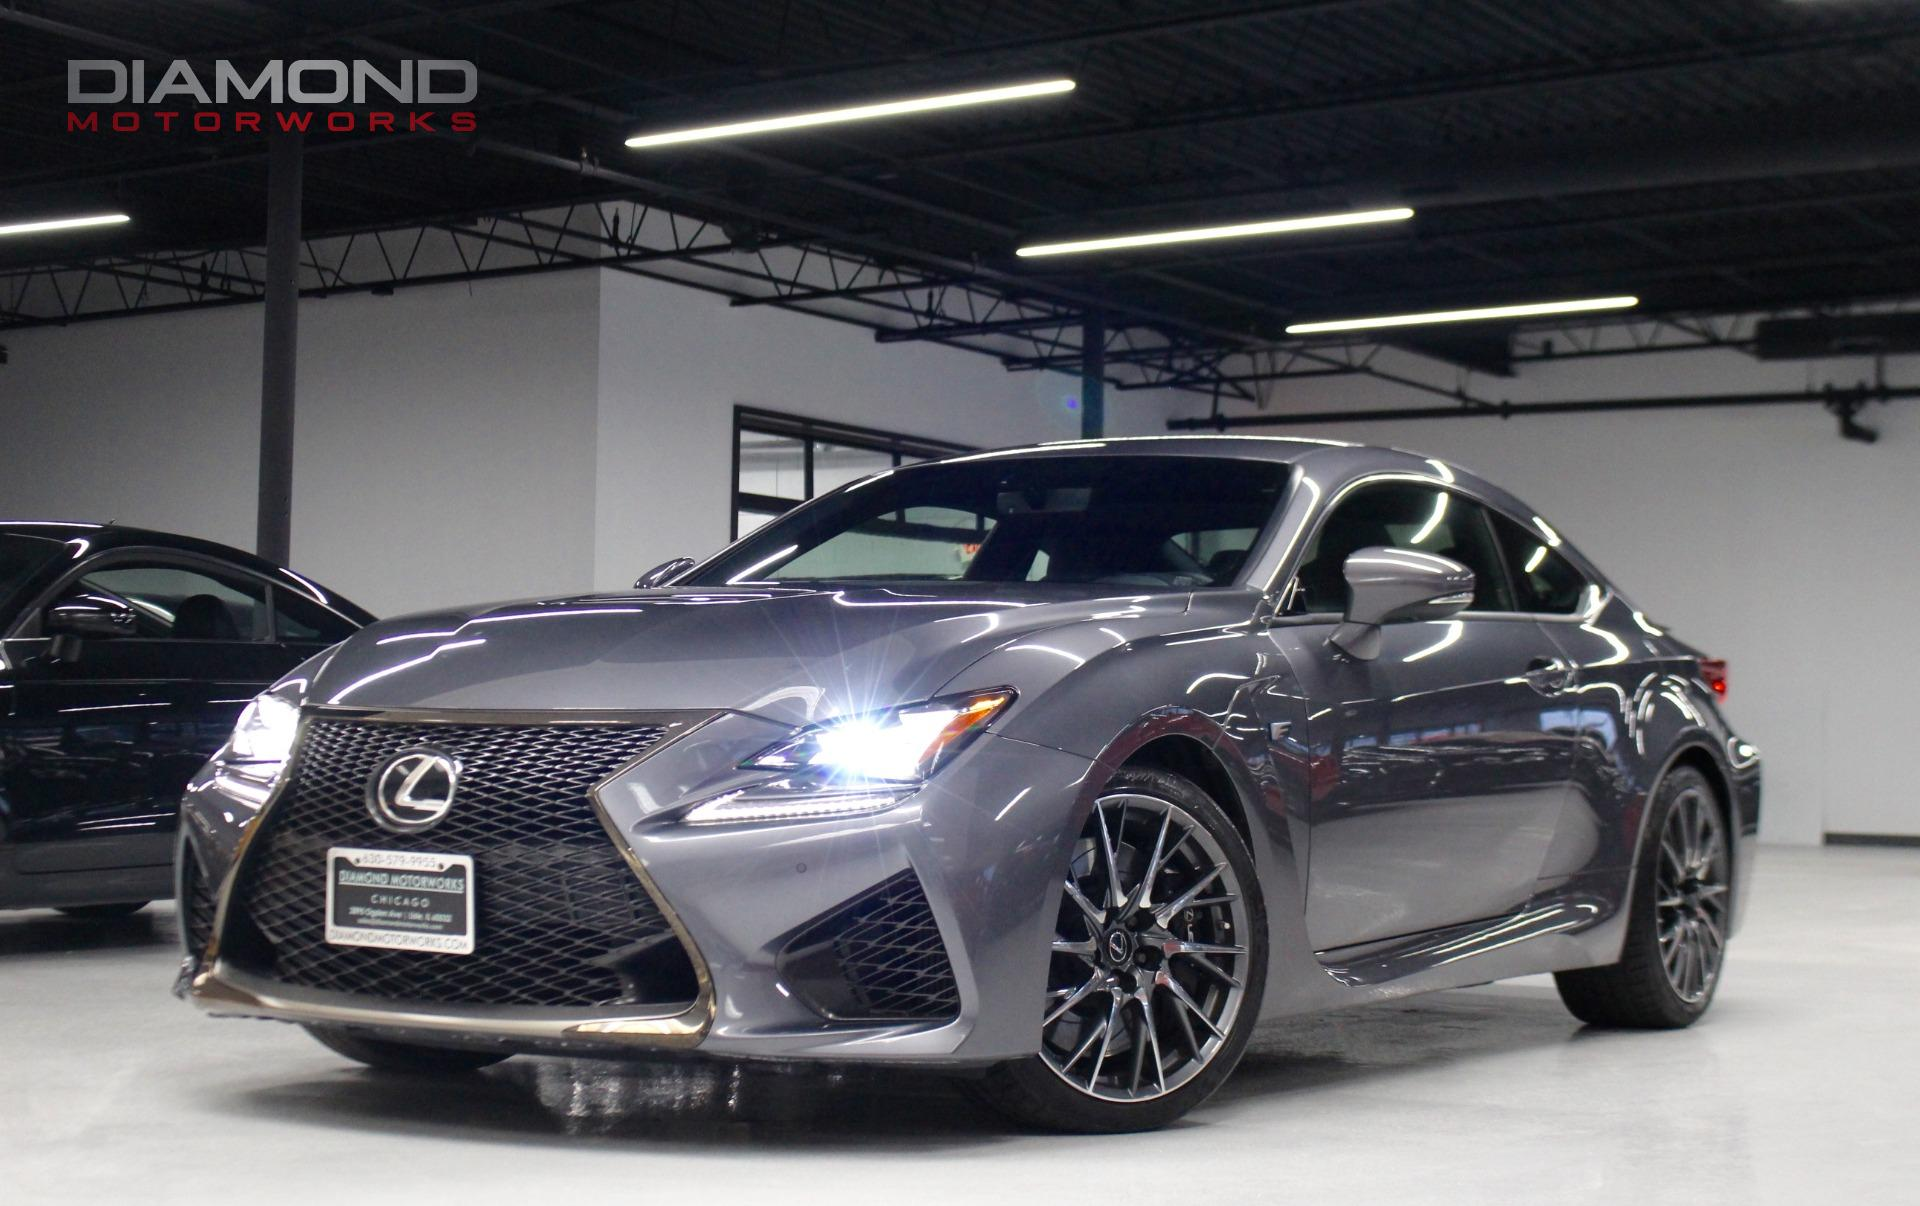 Beautiful 2015 Cars for Sale Near Me